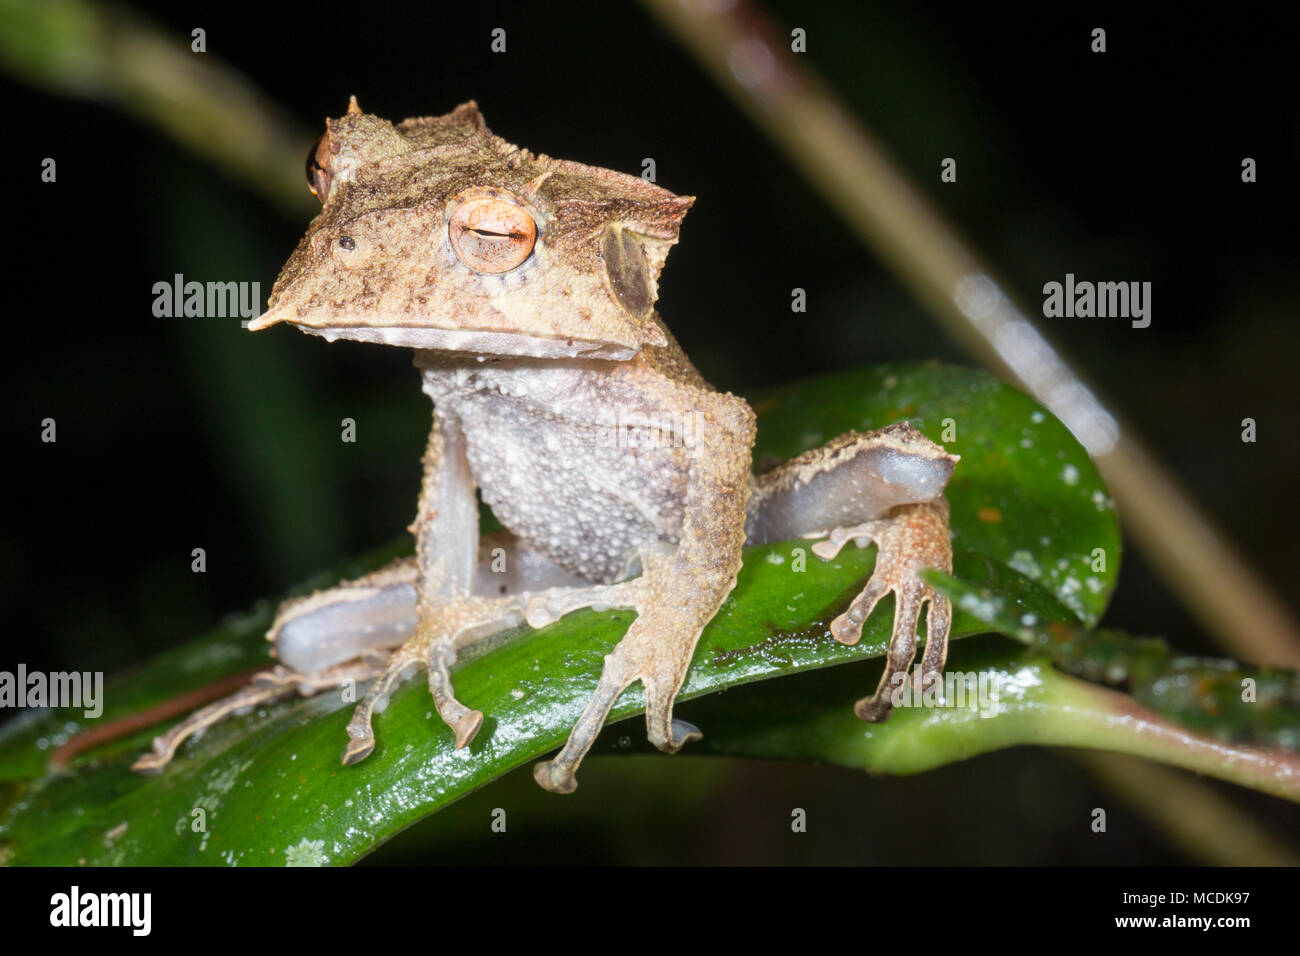 The extremely rare and endangered Ecuador Horned Treefrog (Hemiphractus bubalus). Roosting at night In its natural habitat the rainforest understory,  Stock Photo